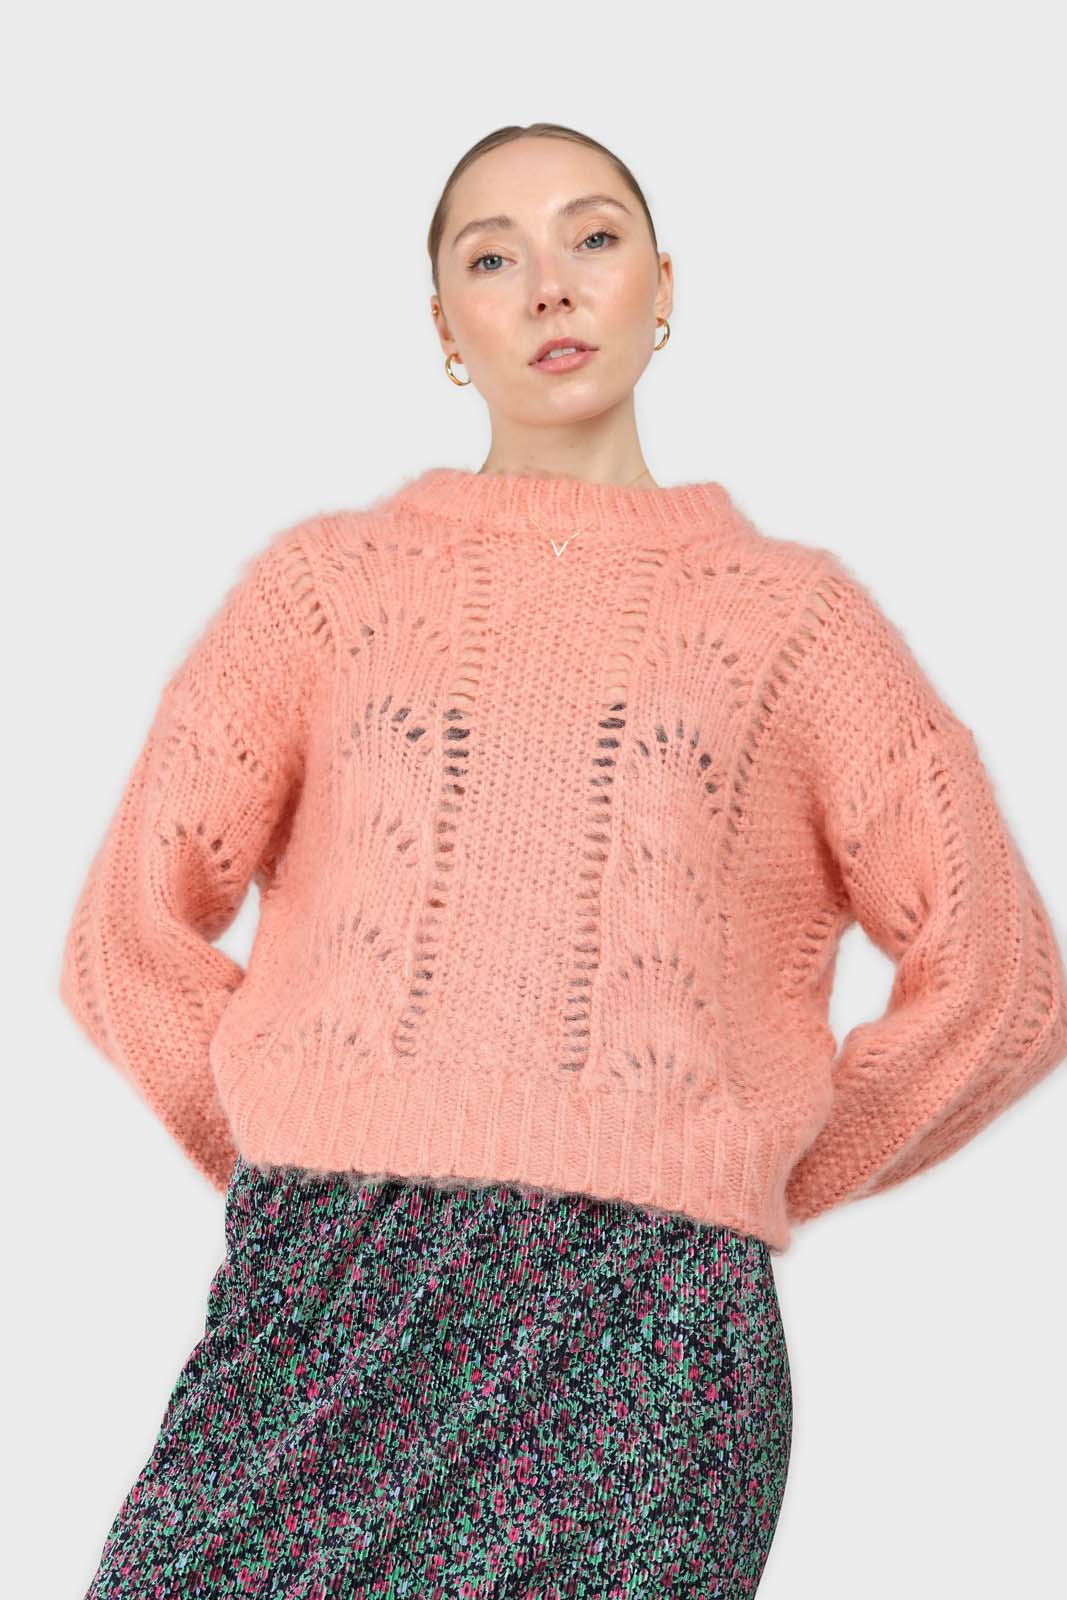 Pink lace knit fuzzy jumper1sx